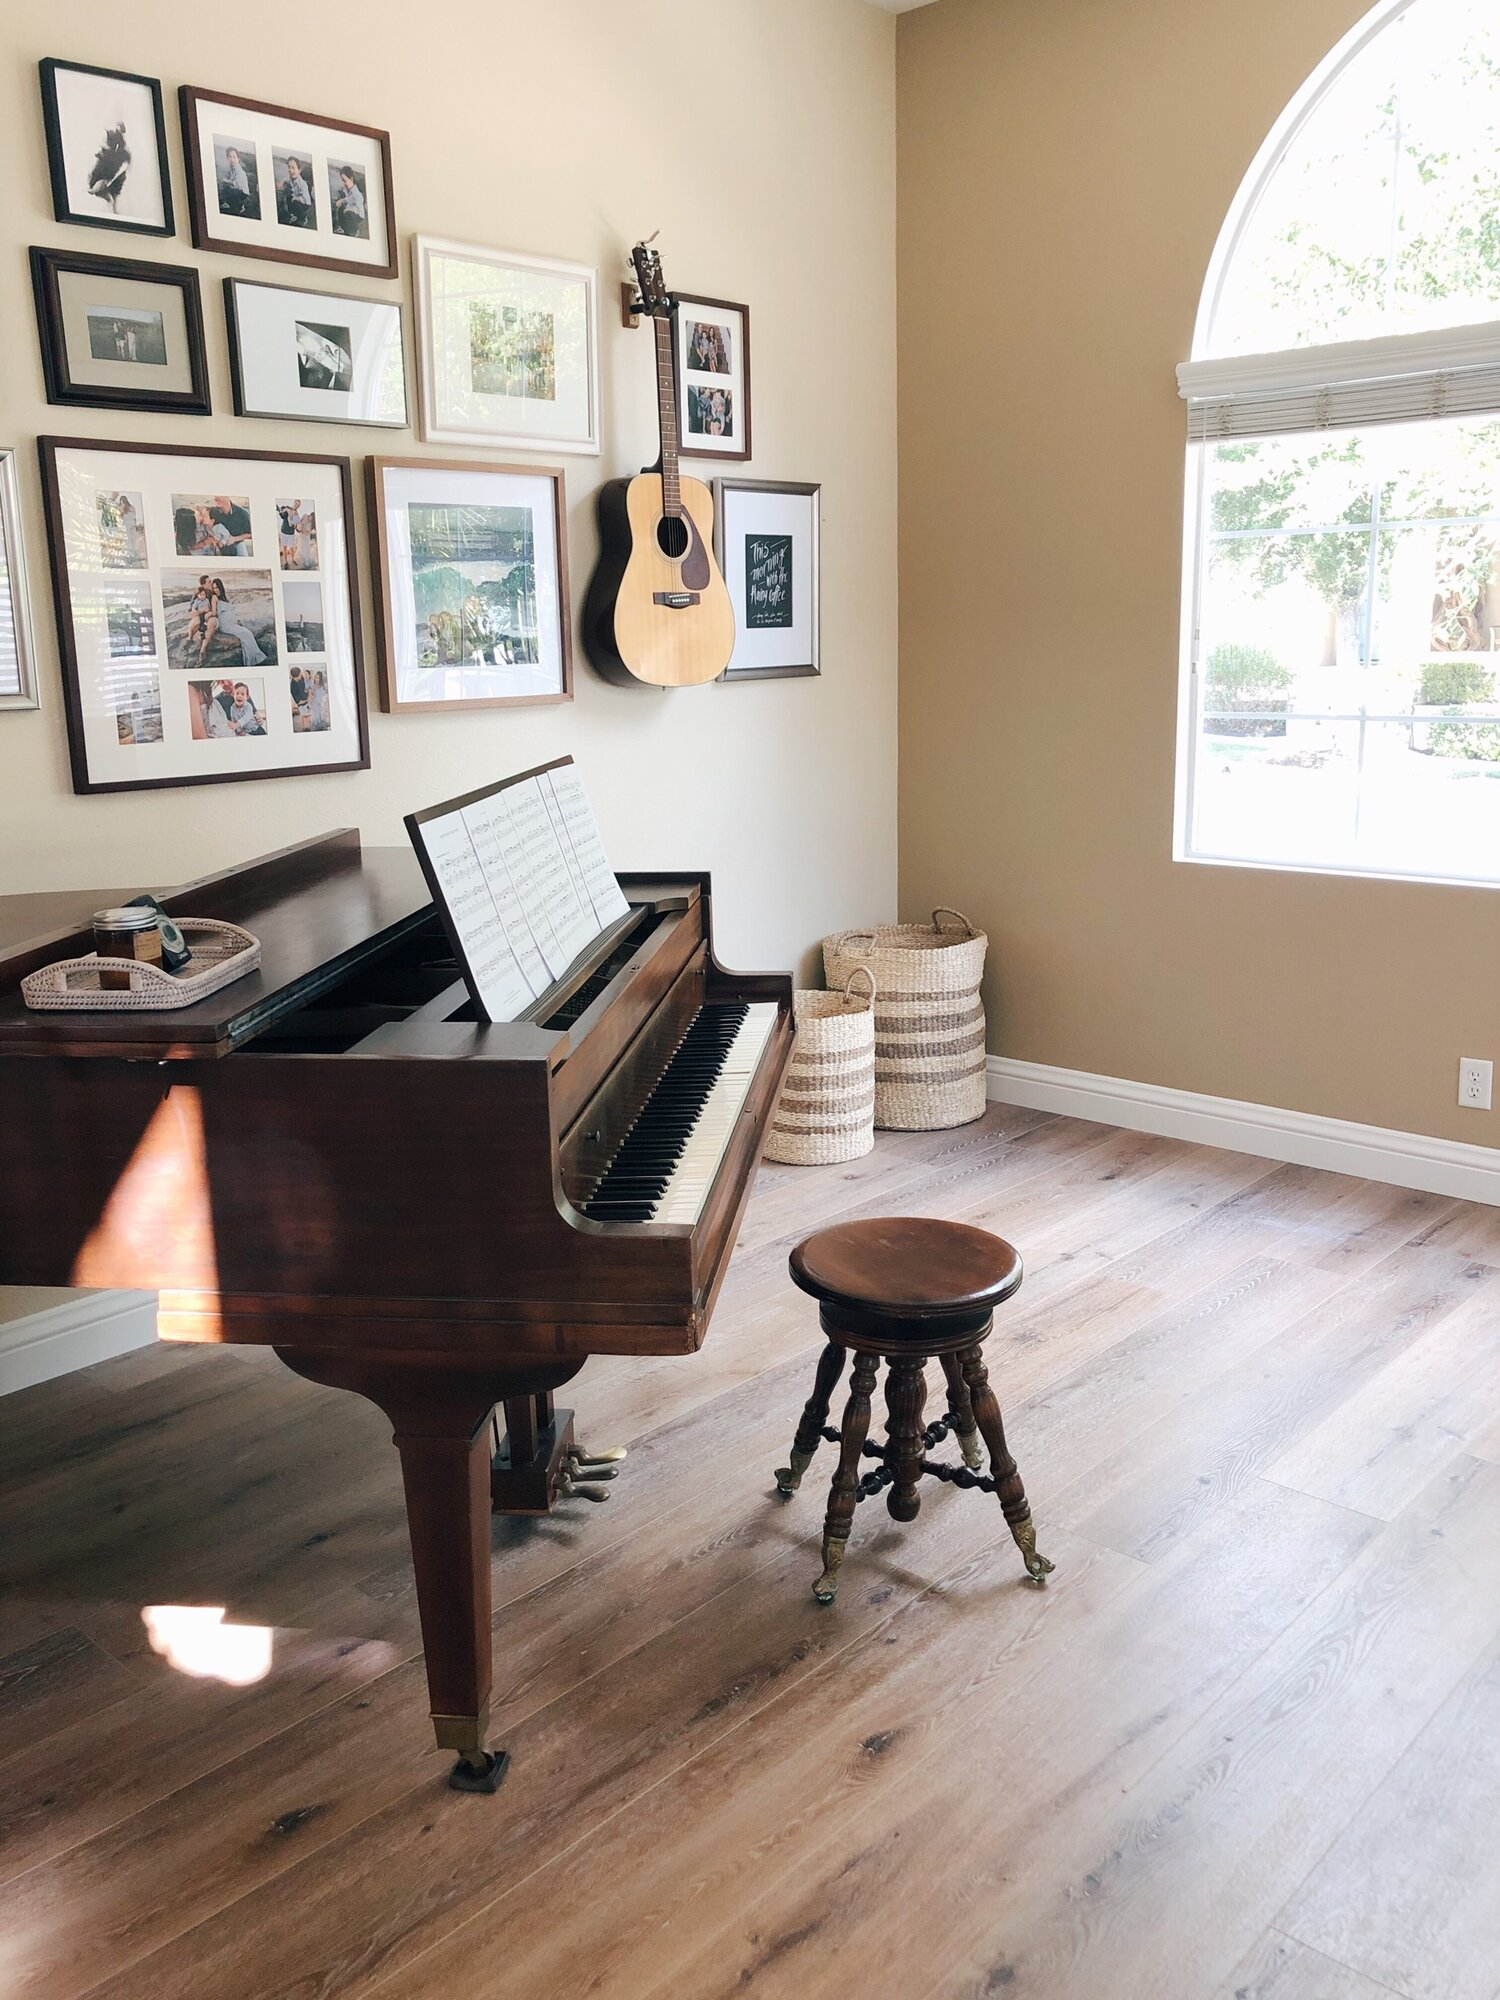 I love this piano room so much – high ceilings, lots of light. We can't wait to put our Christmas tree in front of that window.